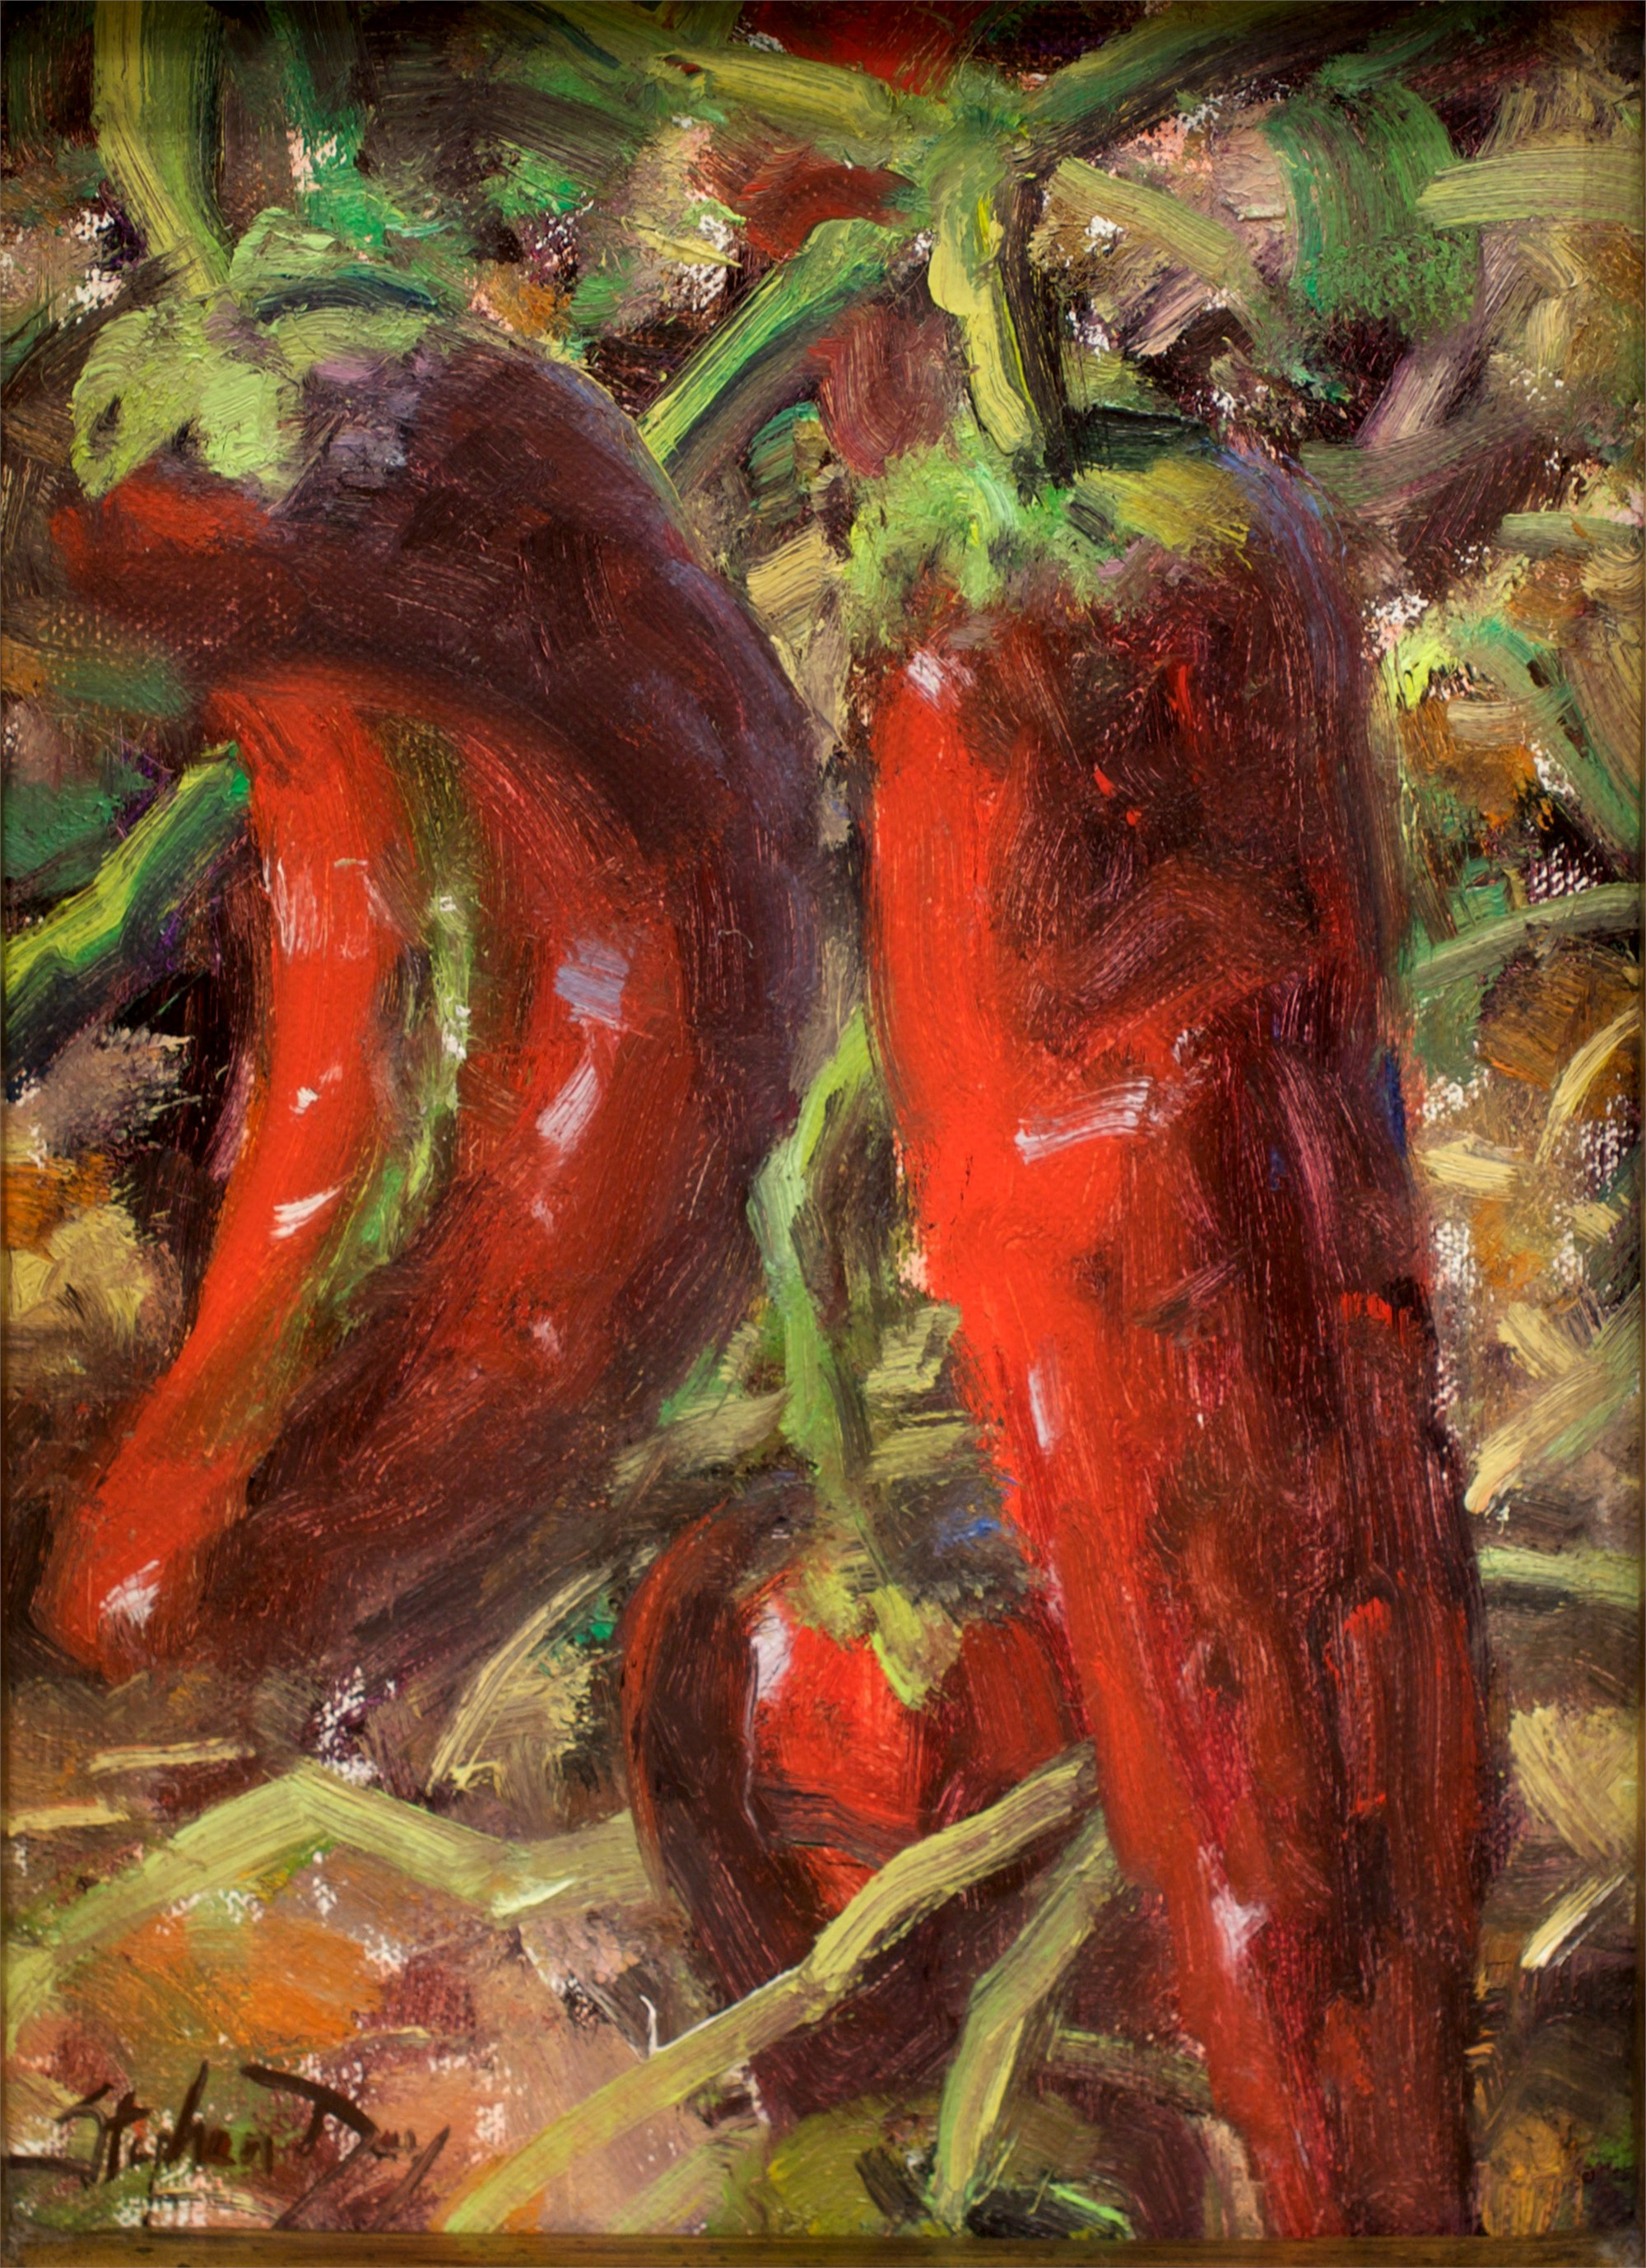 Hatch Peppers on the Vine by Stephen Day